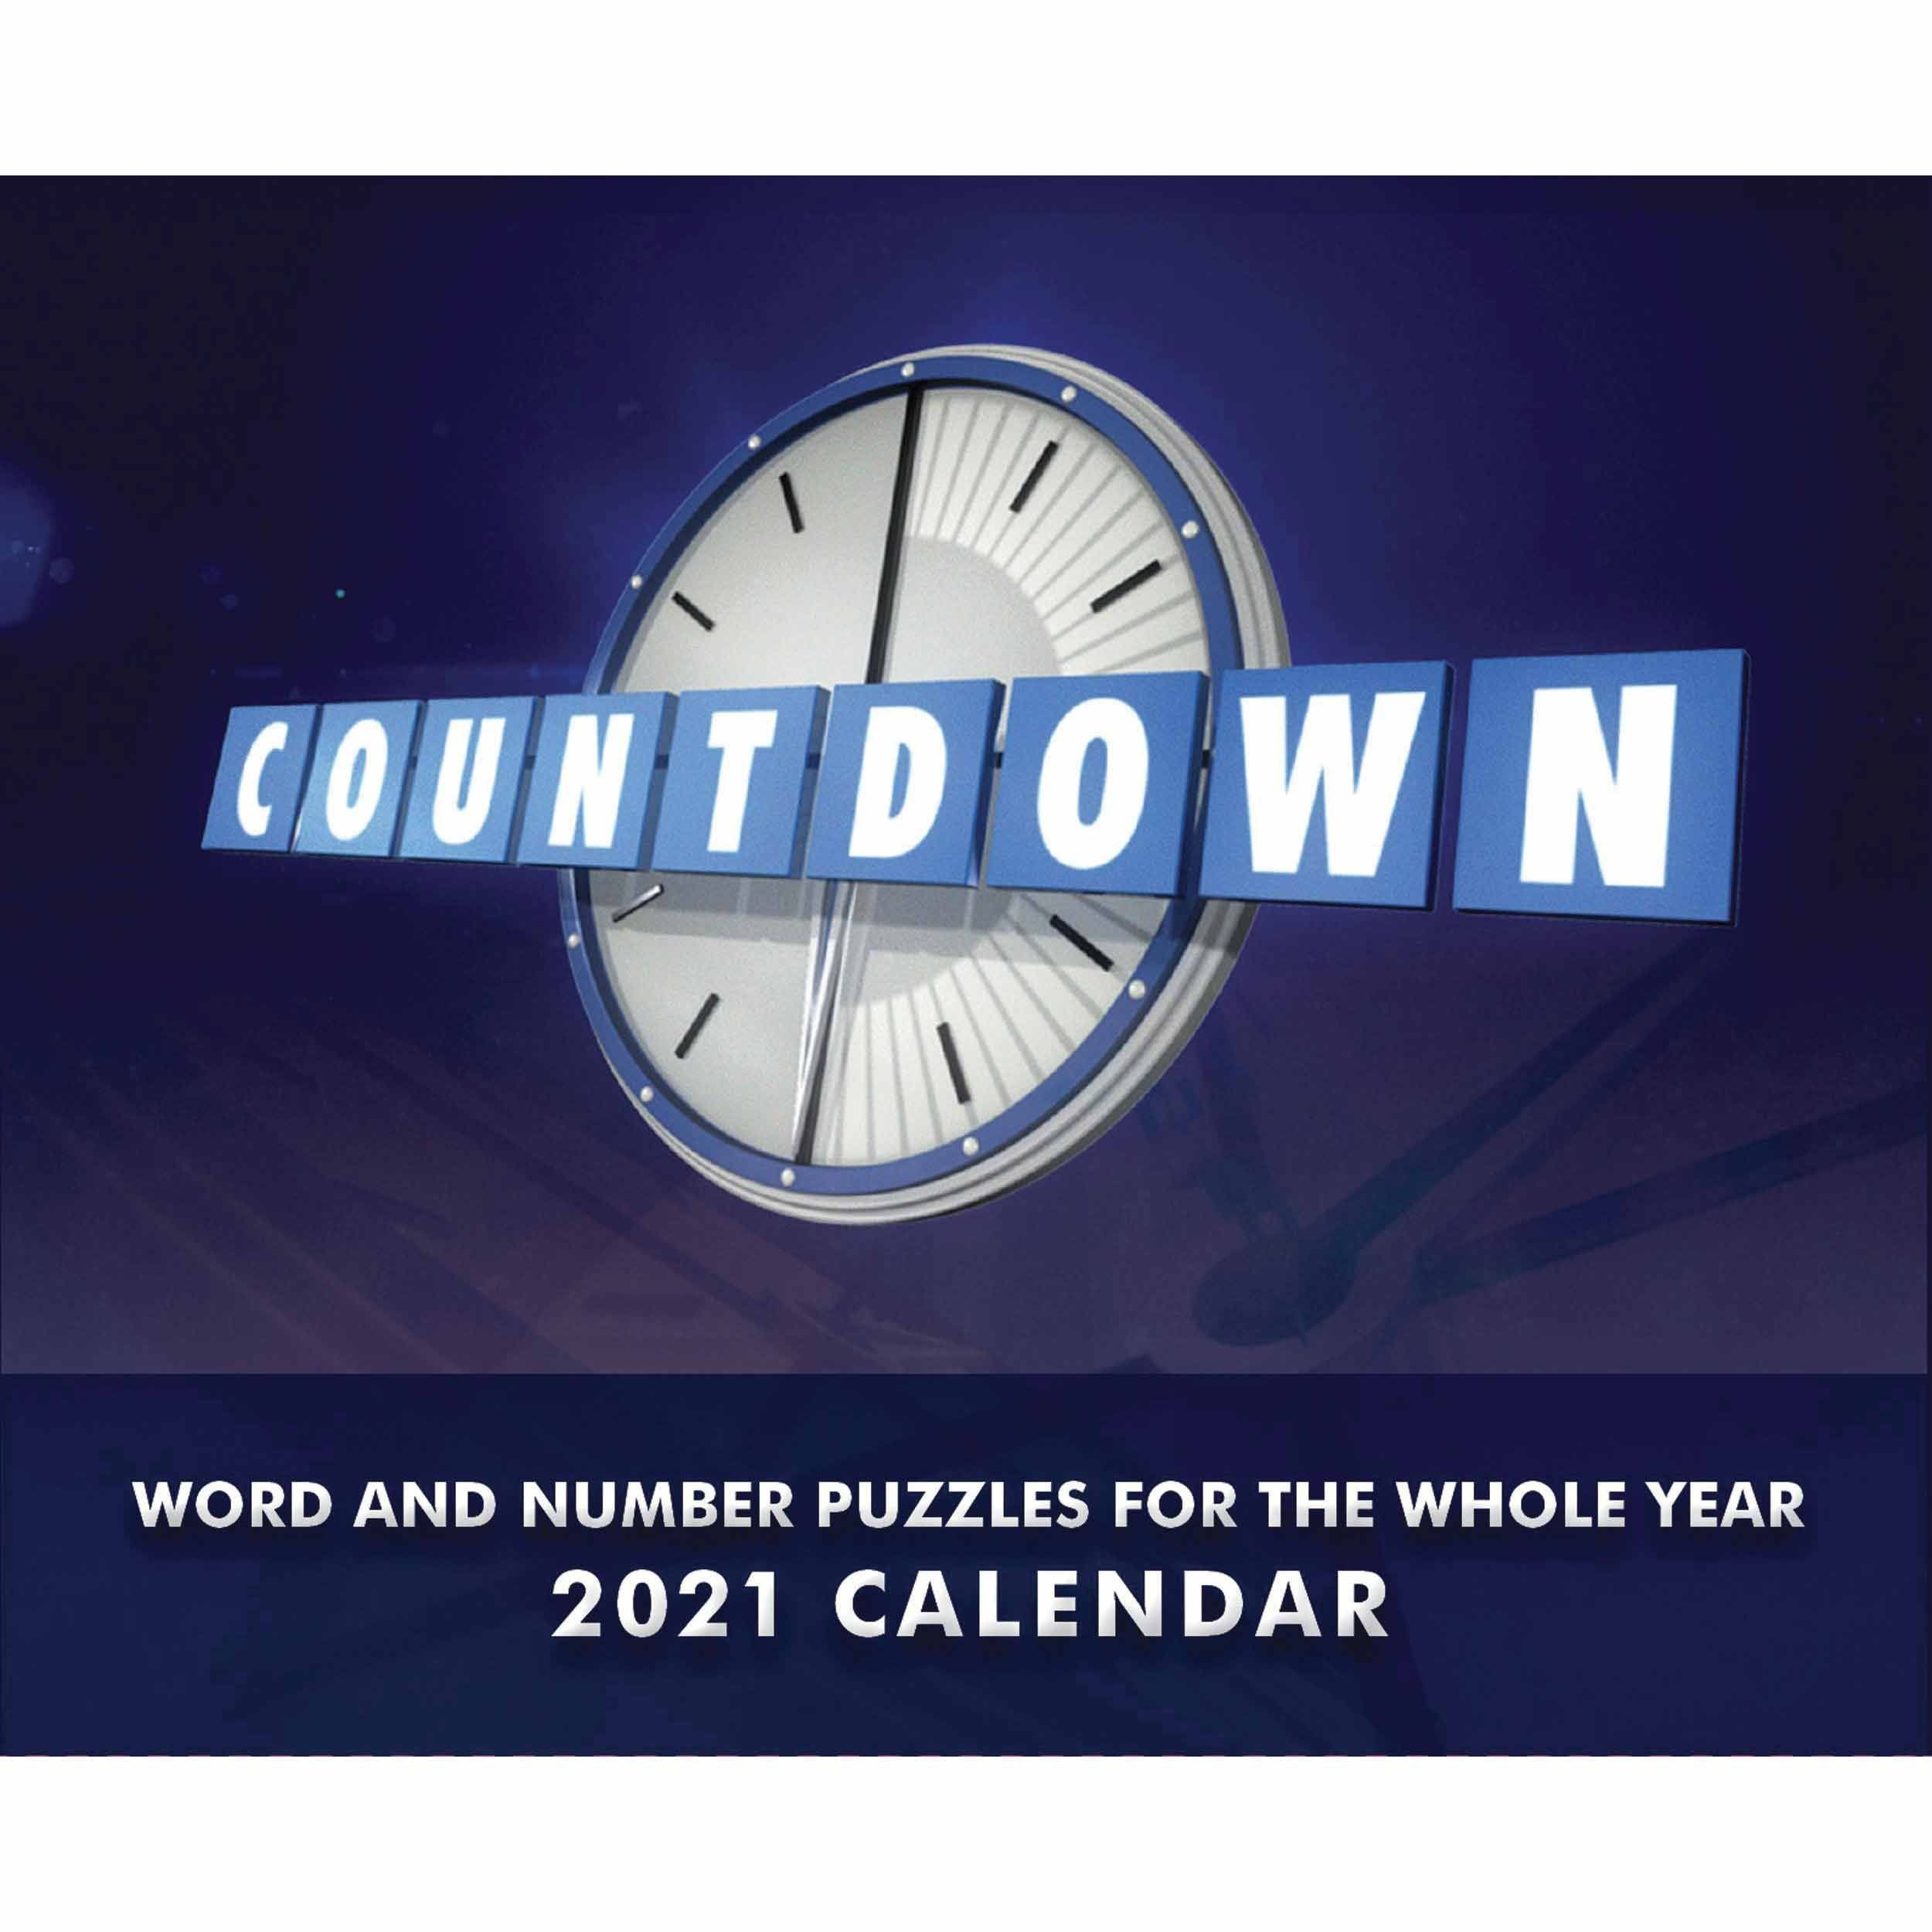 Countdown Desk Calendar 2021 At Calendar Club